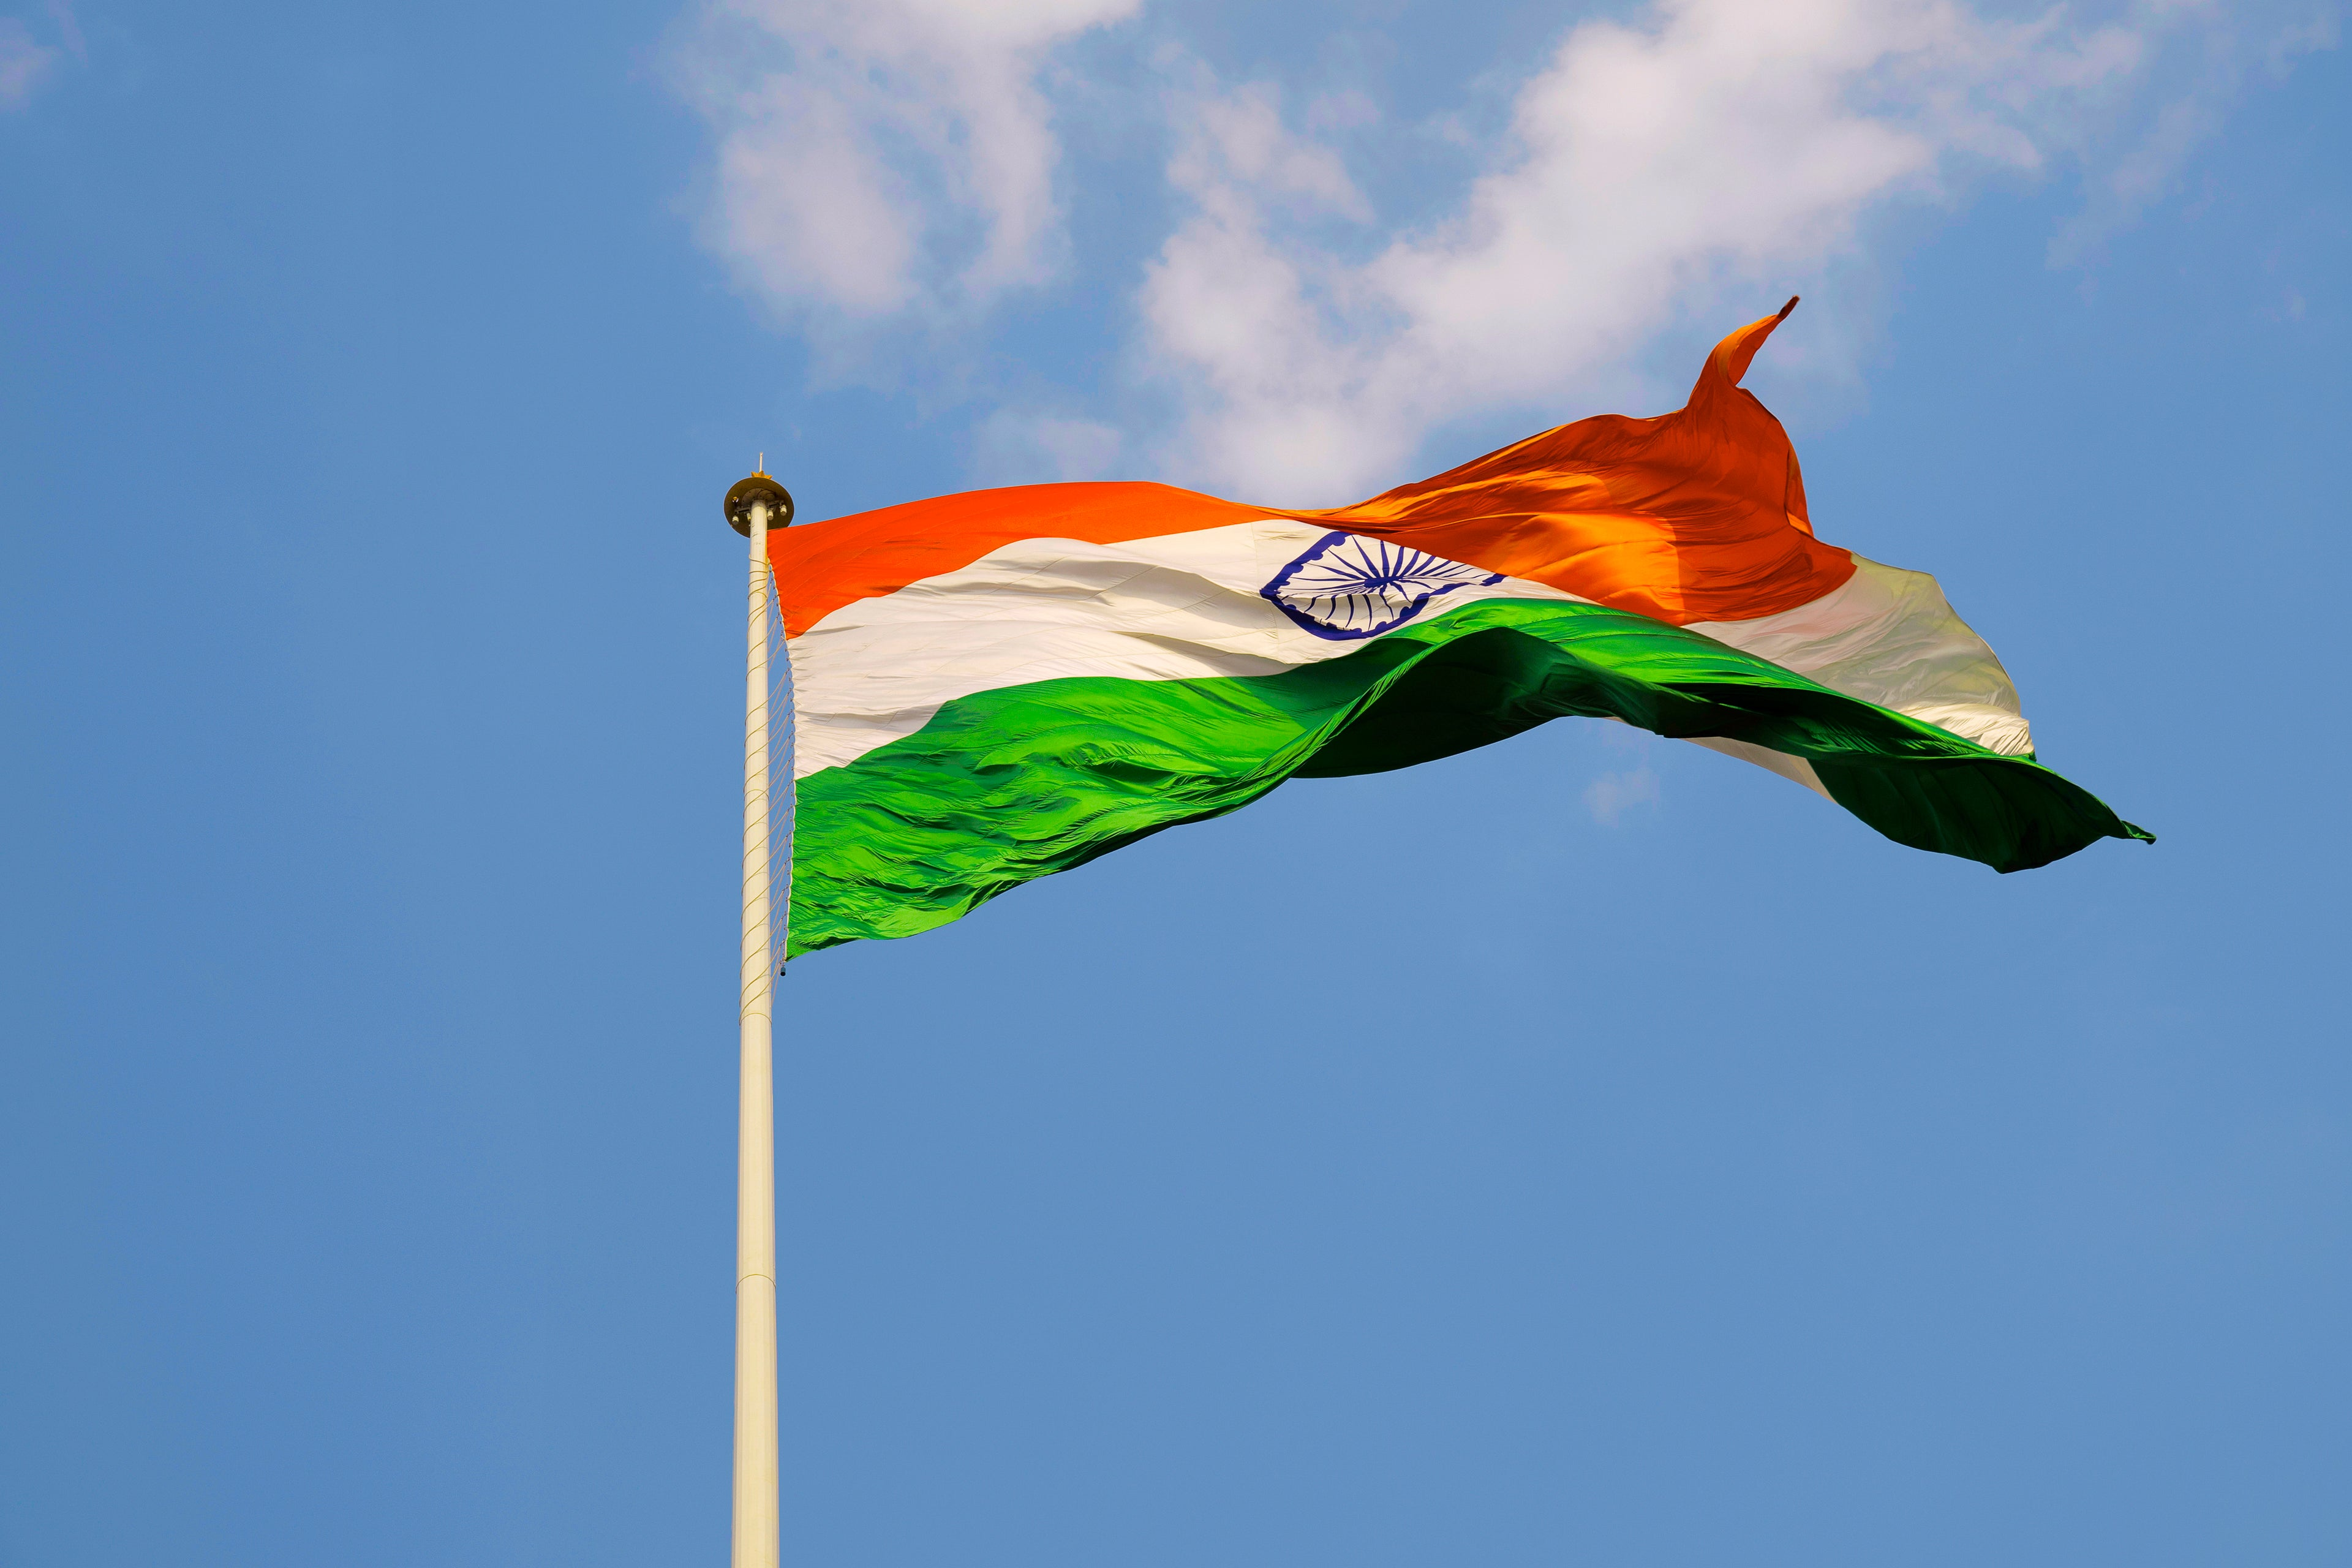 Indian Flag Images Hd720p: Why HDFC Bank Limited Stock Jumped 11.6% In March -- The